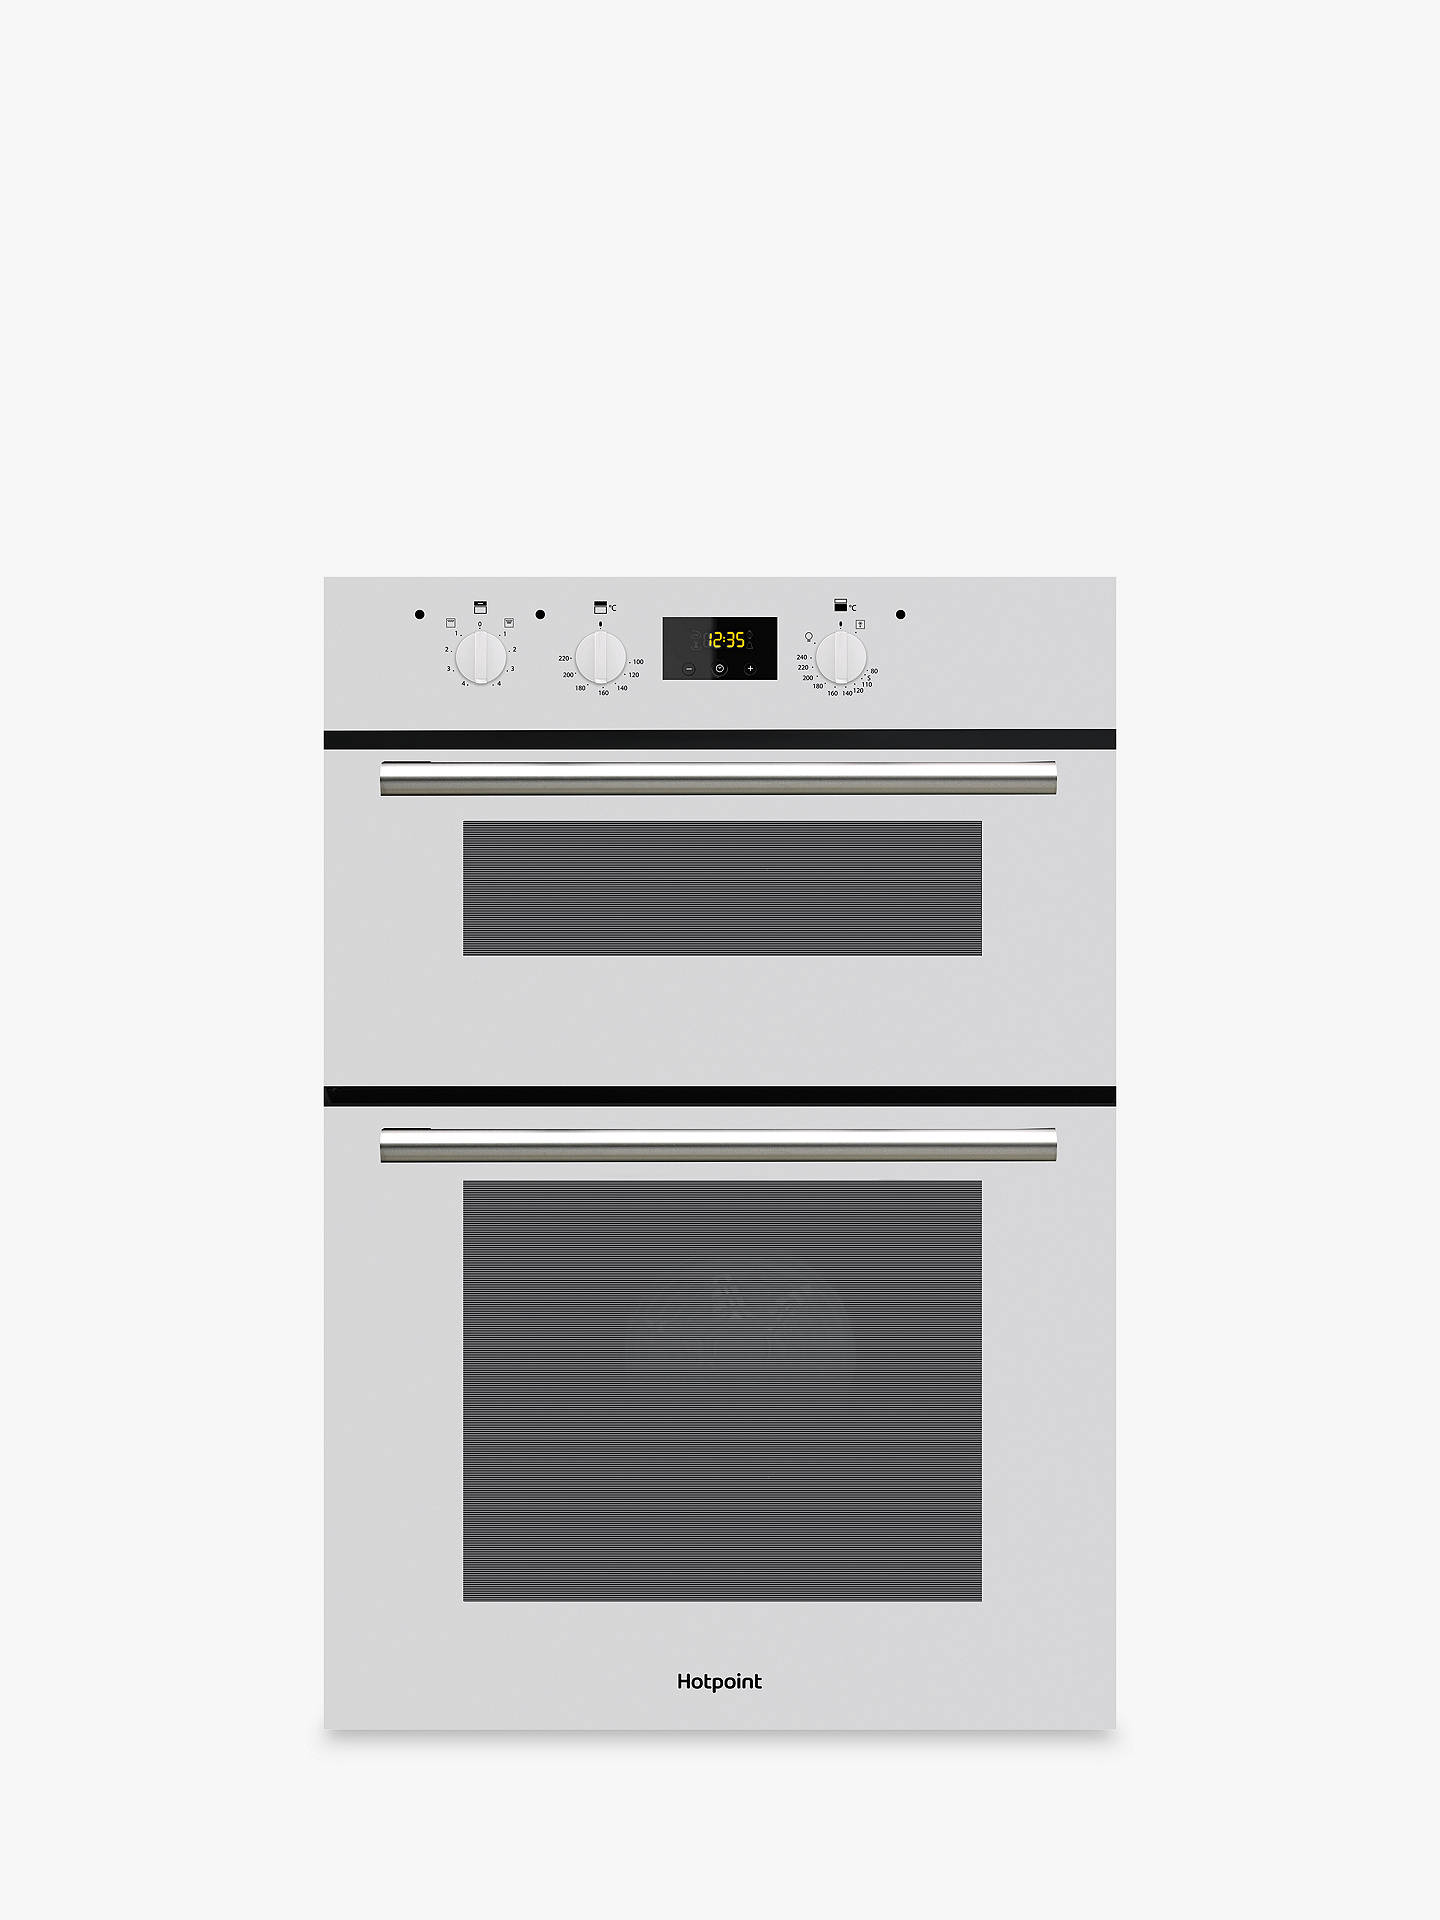 Hotpoint Double Oven Bu62 Manual User Manual Guide